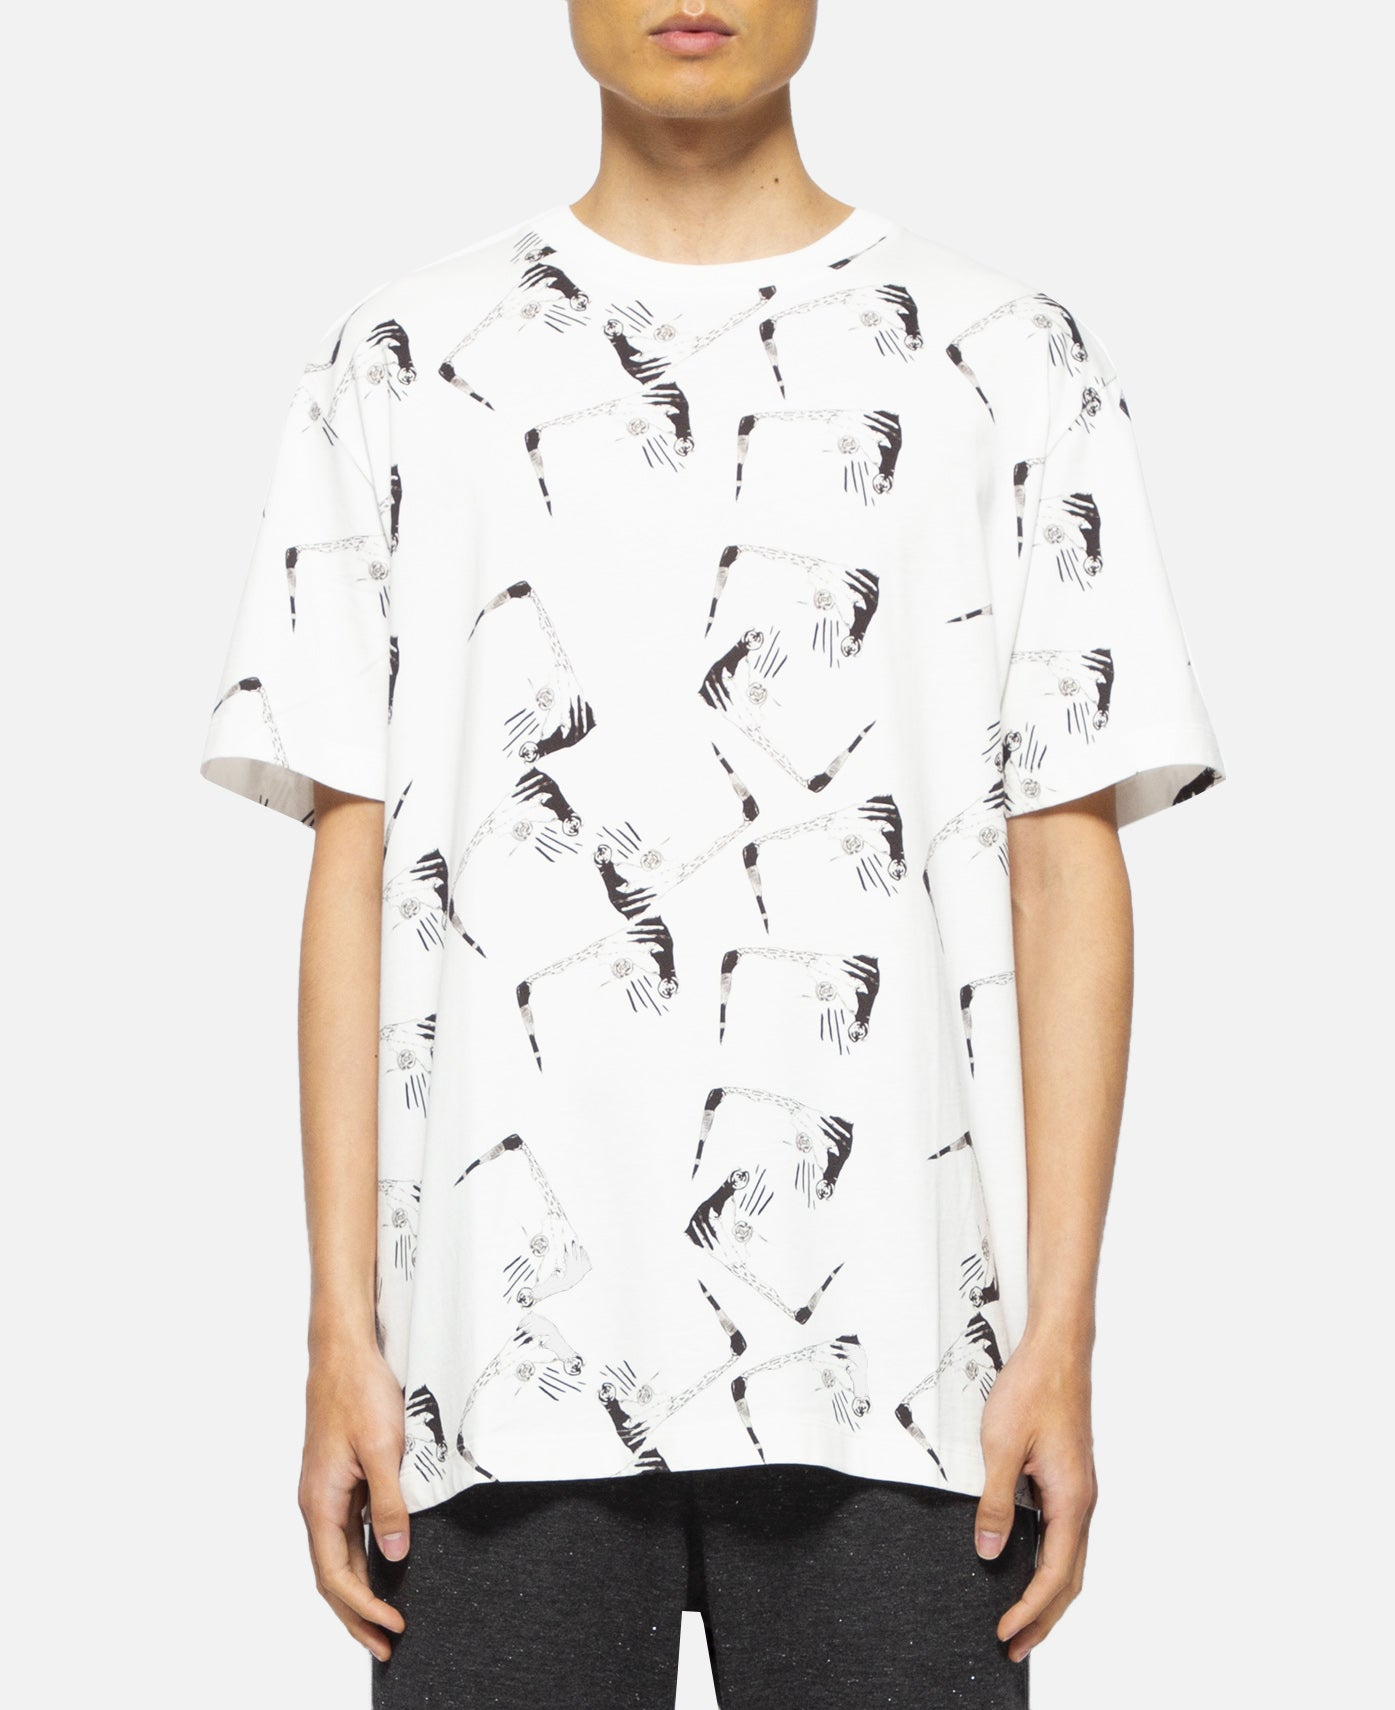 Abstract Graphic T-Shirt 2